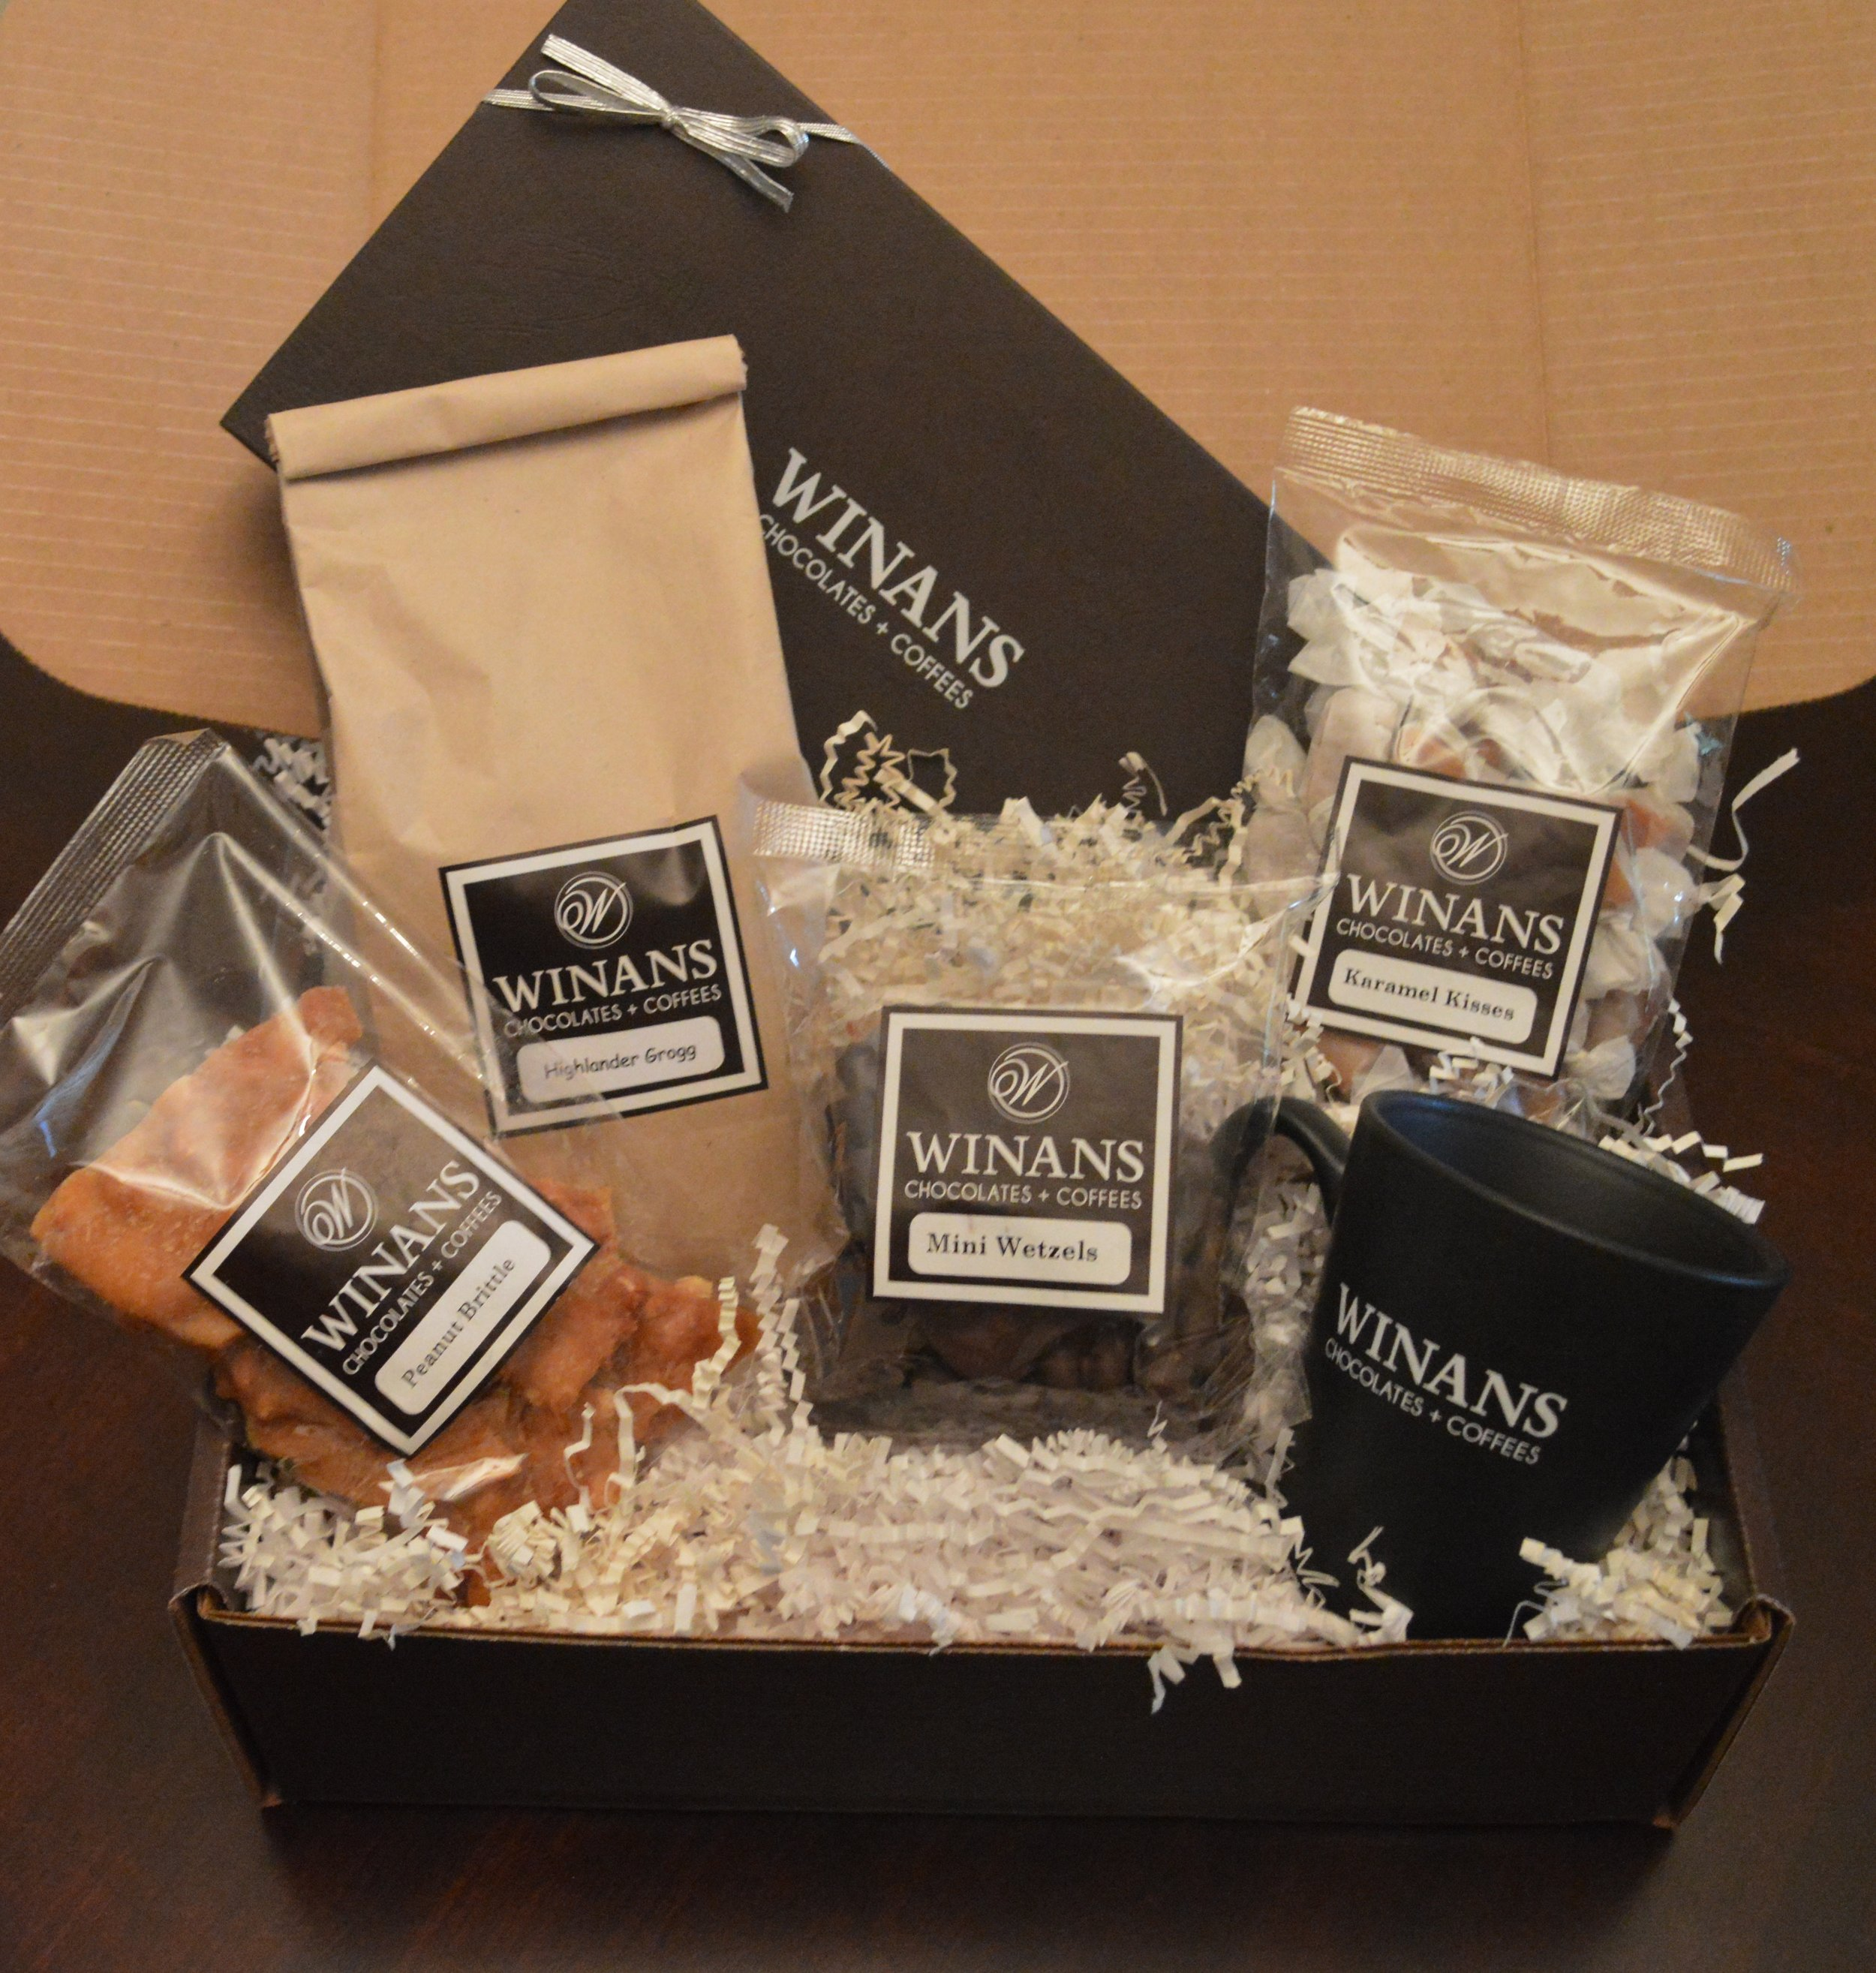 Shippable Gift Boxes - Prices range from $20 to $100 and up.  You can customize your box, or even add your logoed items.